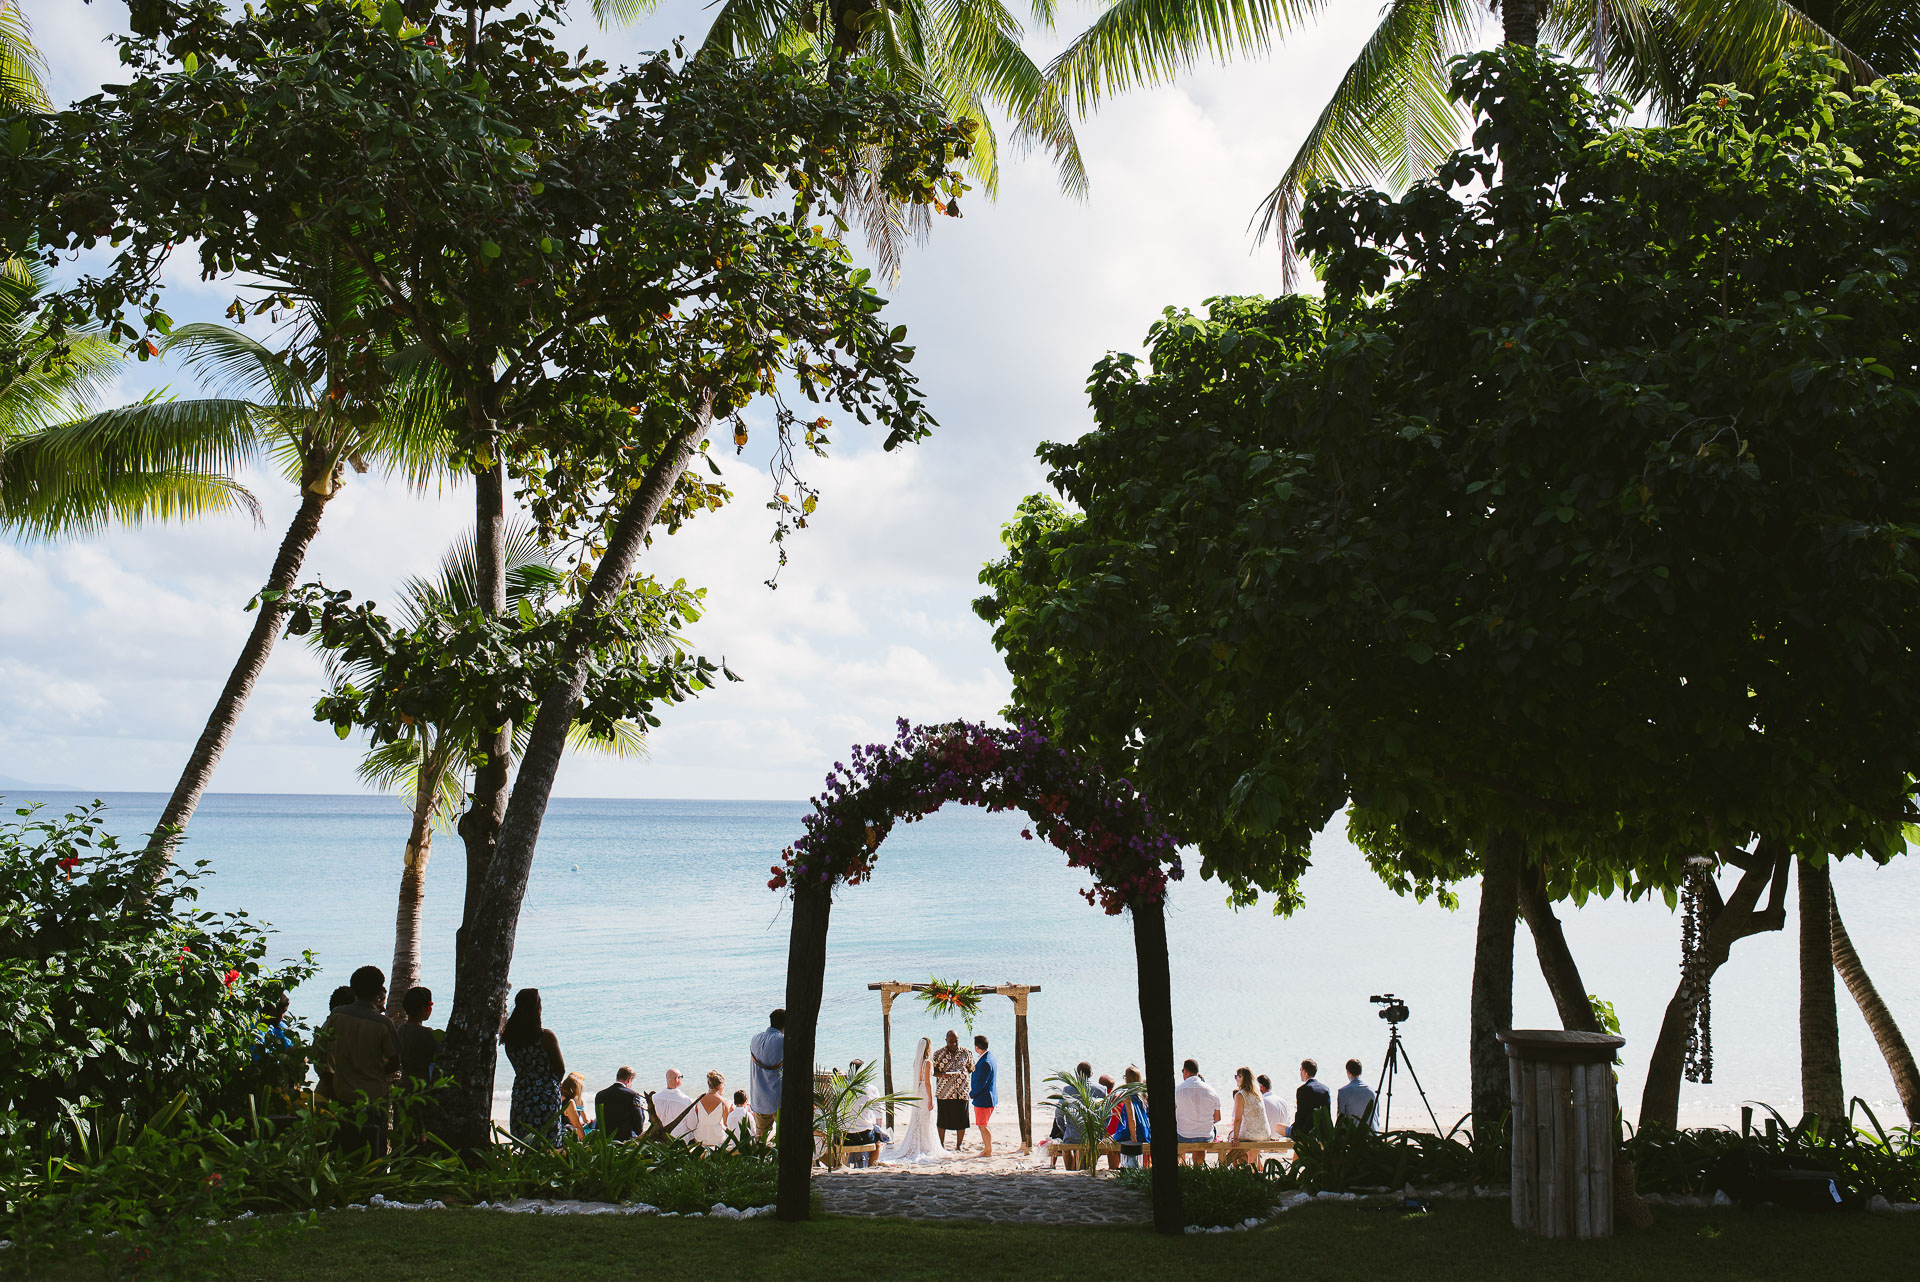 kokomo-island-fiji-wedding